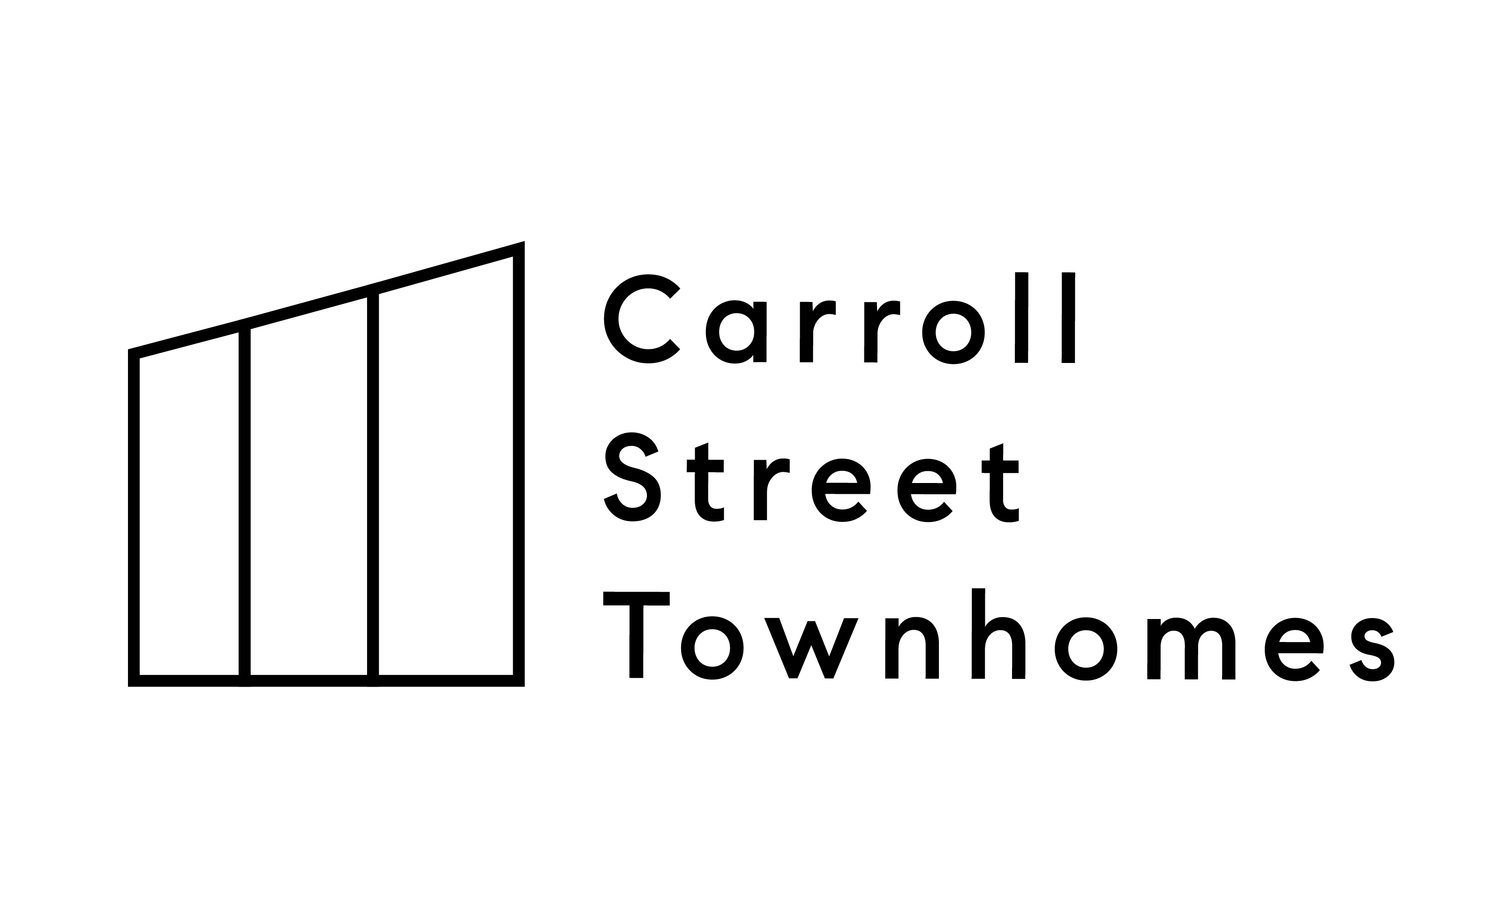 Carroll St. Townhomes